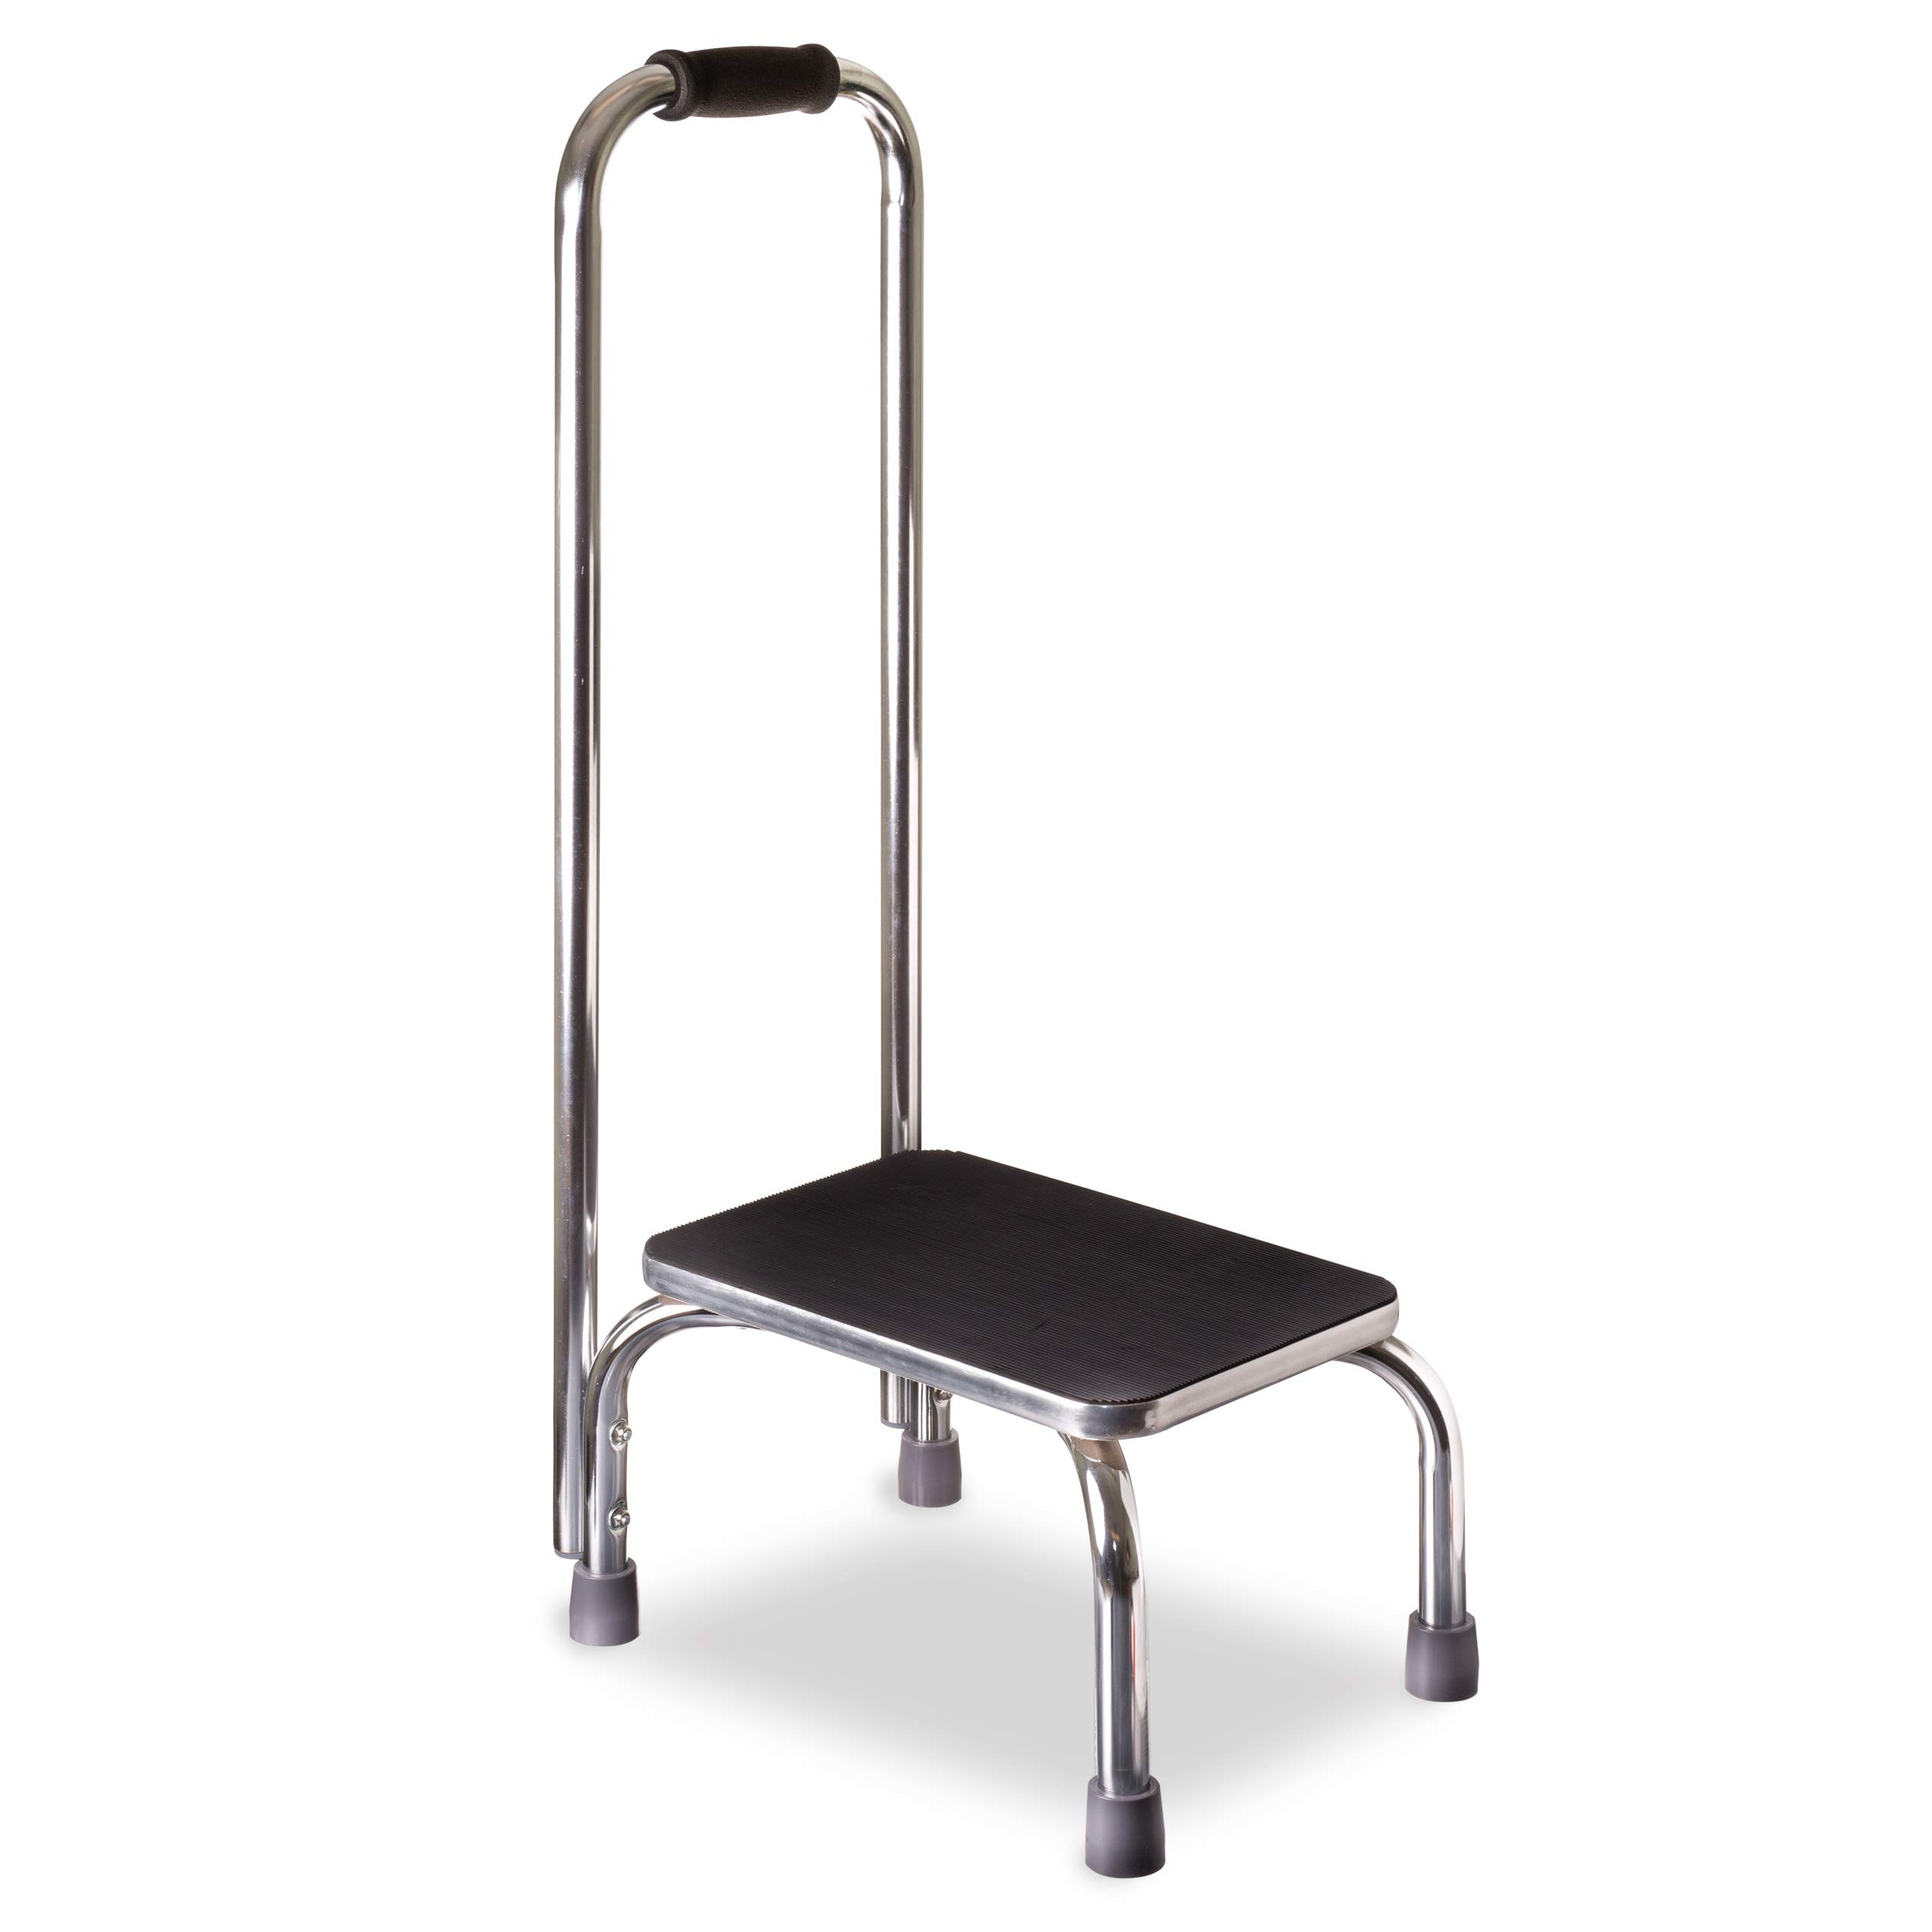 DMI Step Stool with Handle for Adults and Seniors, Heavy Duty Metal Stepping Stool for High Beds, Portable Foot Step Stool for Elderly, 300 lb Weight by Duro-Med